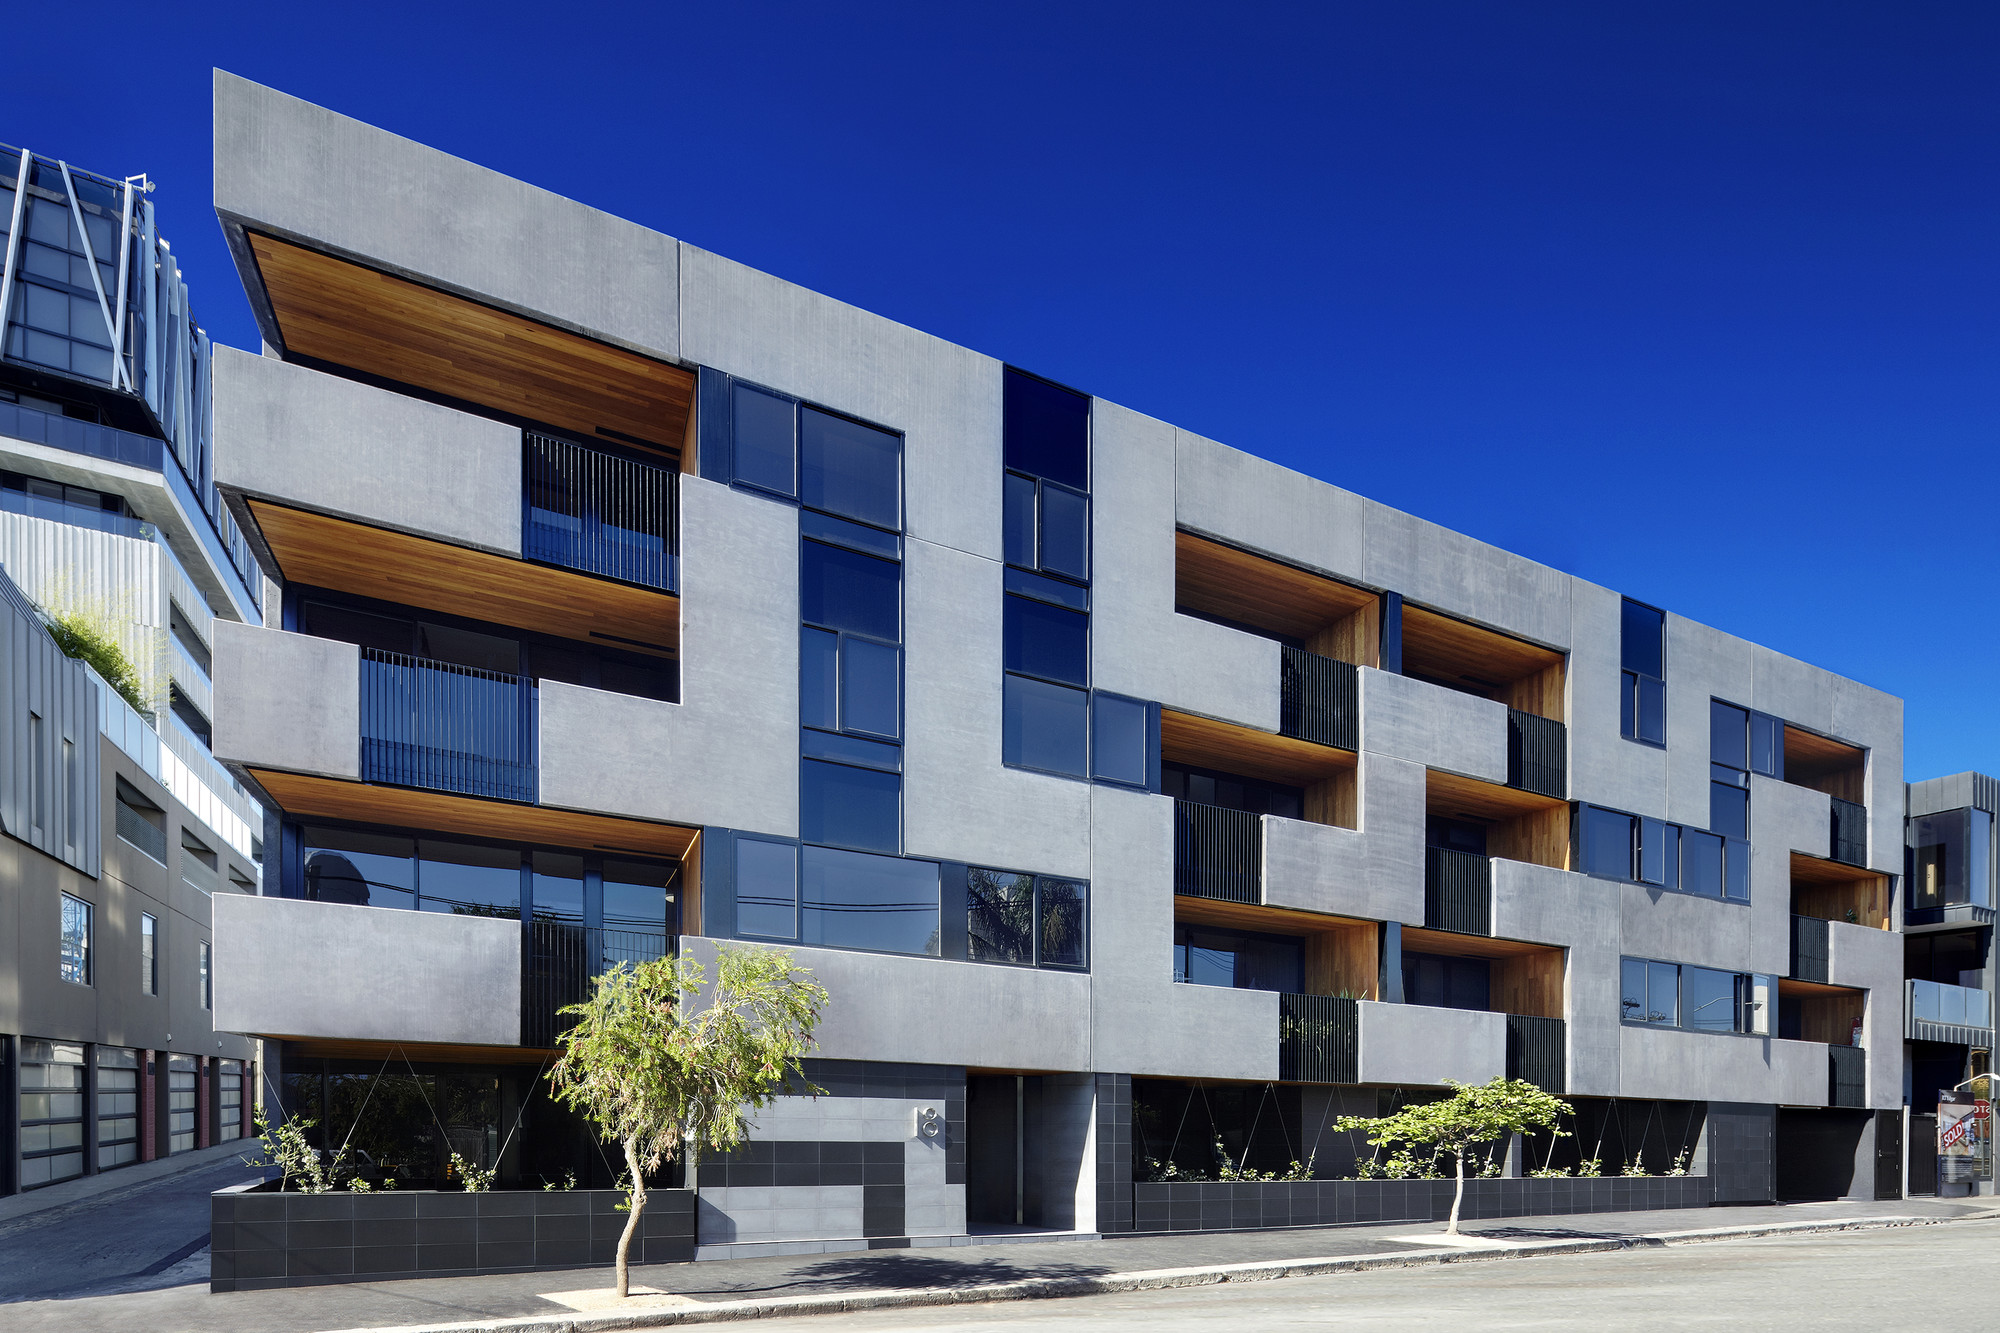 Gallery of the maze apartments cht architects 8 for Apartment architecture